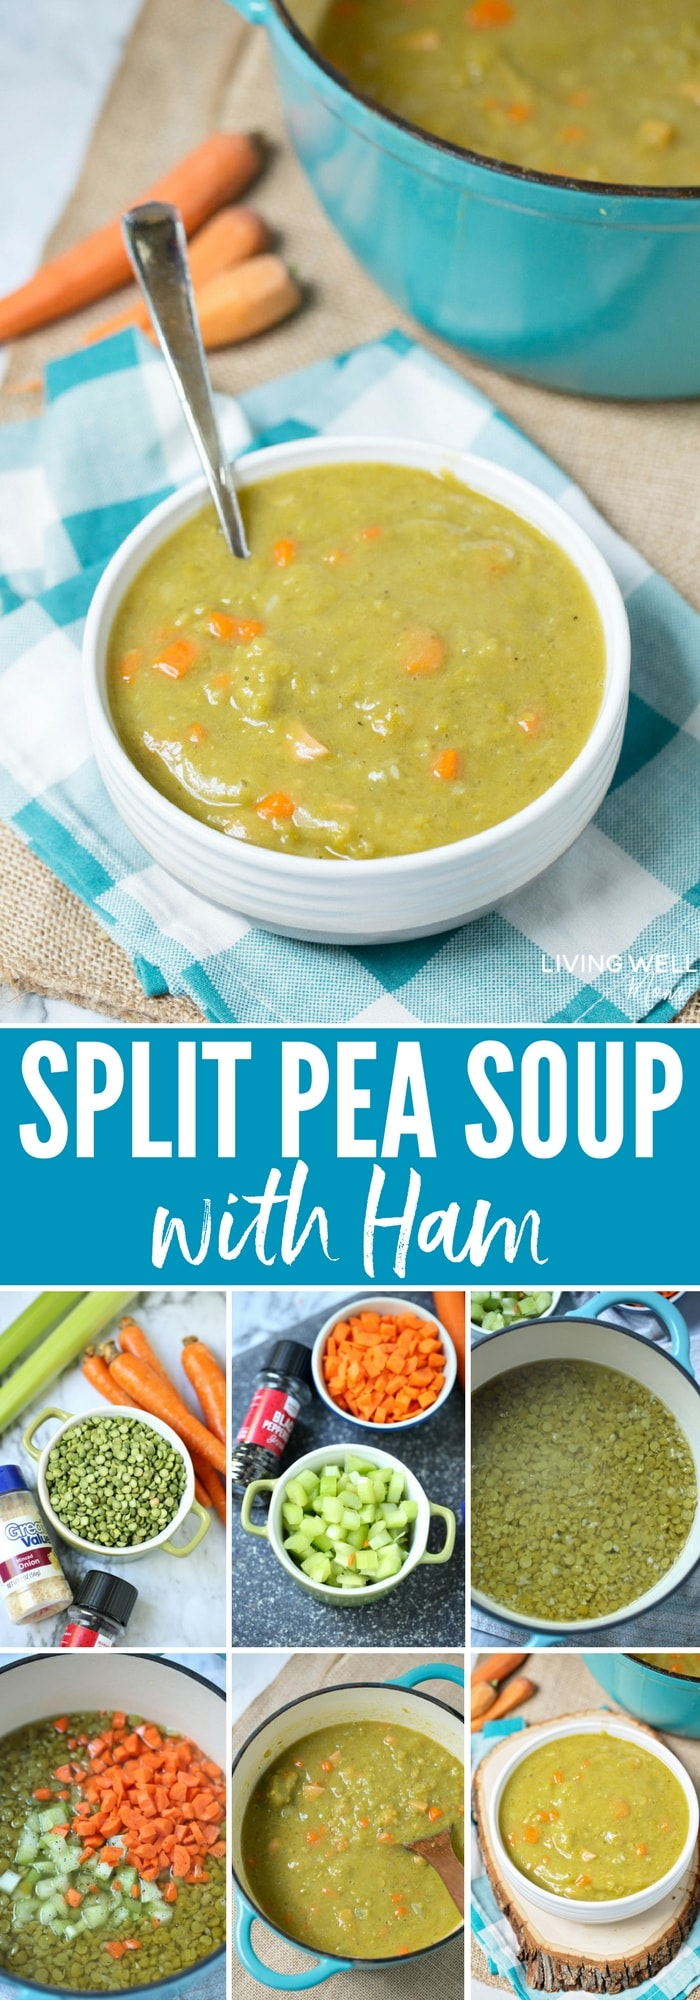 This hearty, delicious Split Pea Soup with Ham recipe will satisfy the whole family on a cold winter day. It's also naturally gluten-free and dairy-free and a great meal option if you have allergies.